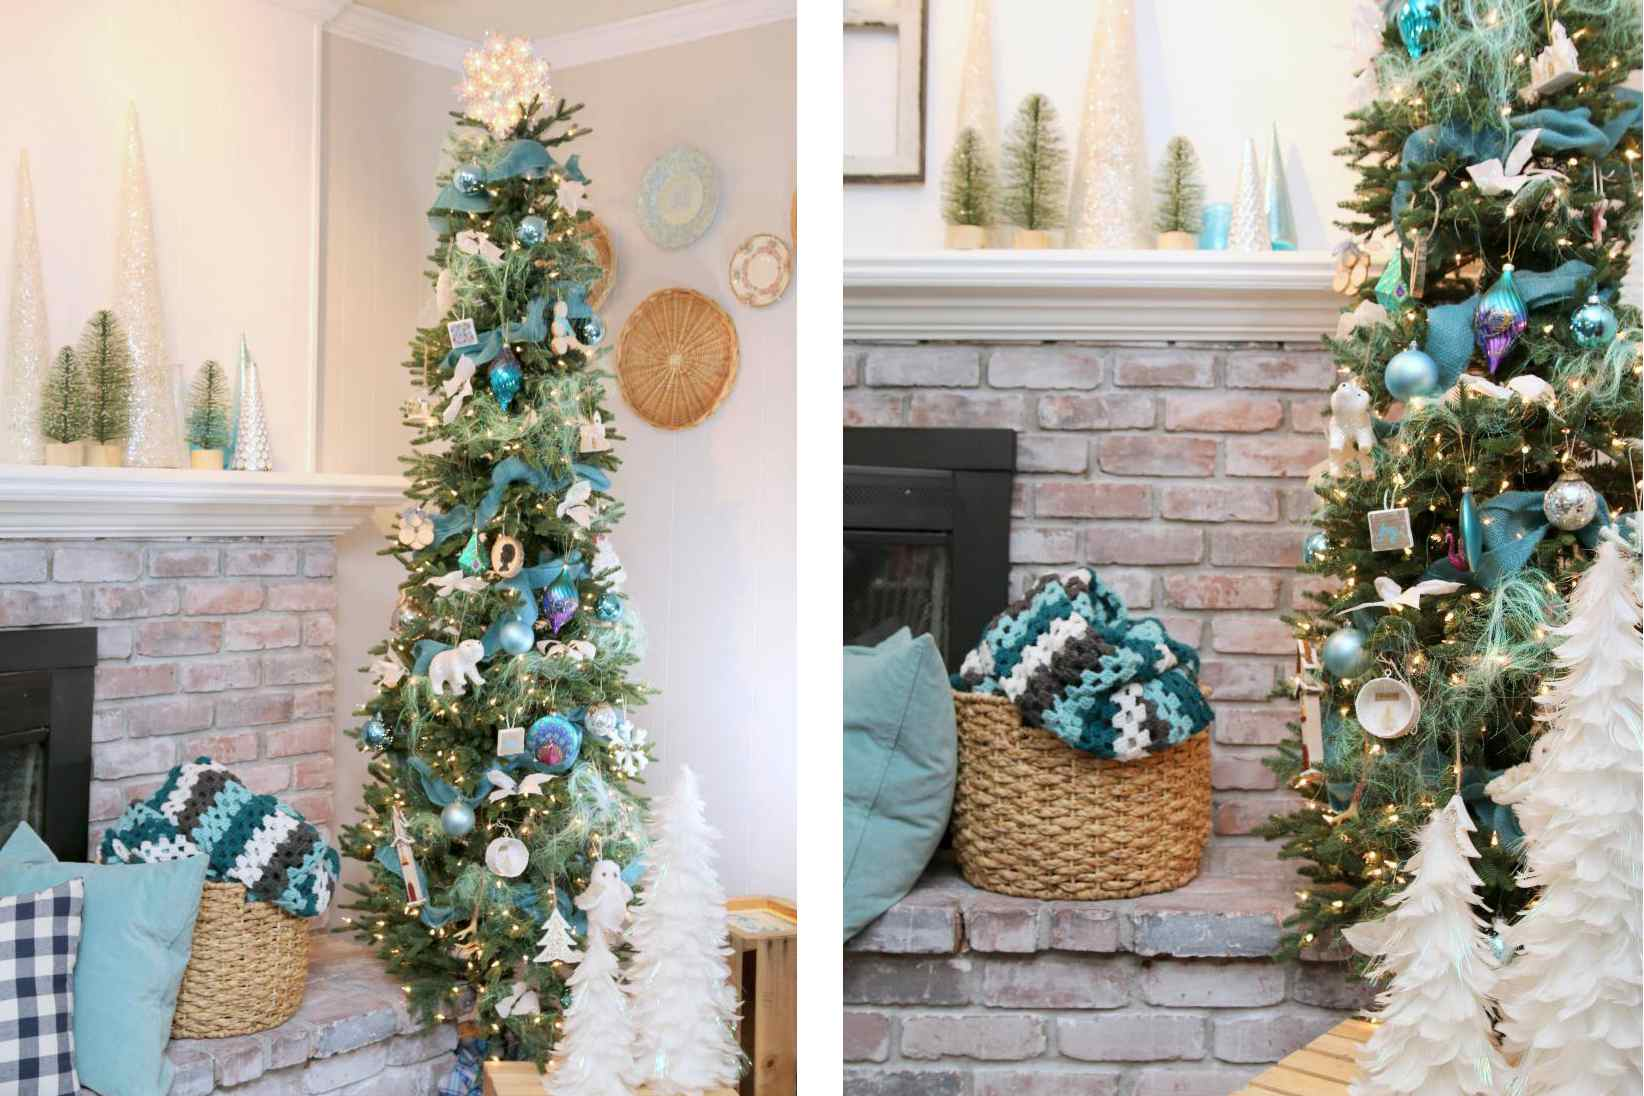 33 Festive Ways To Decorate Your Christmas Tree